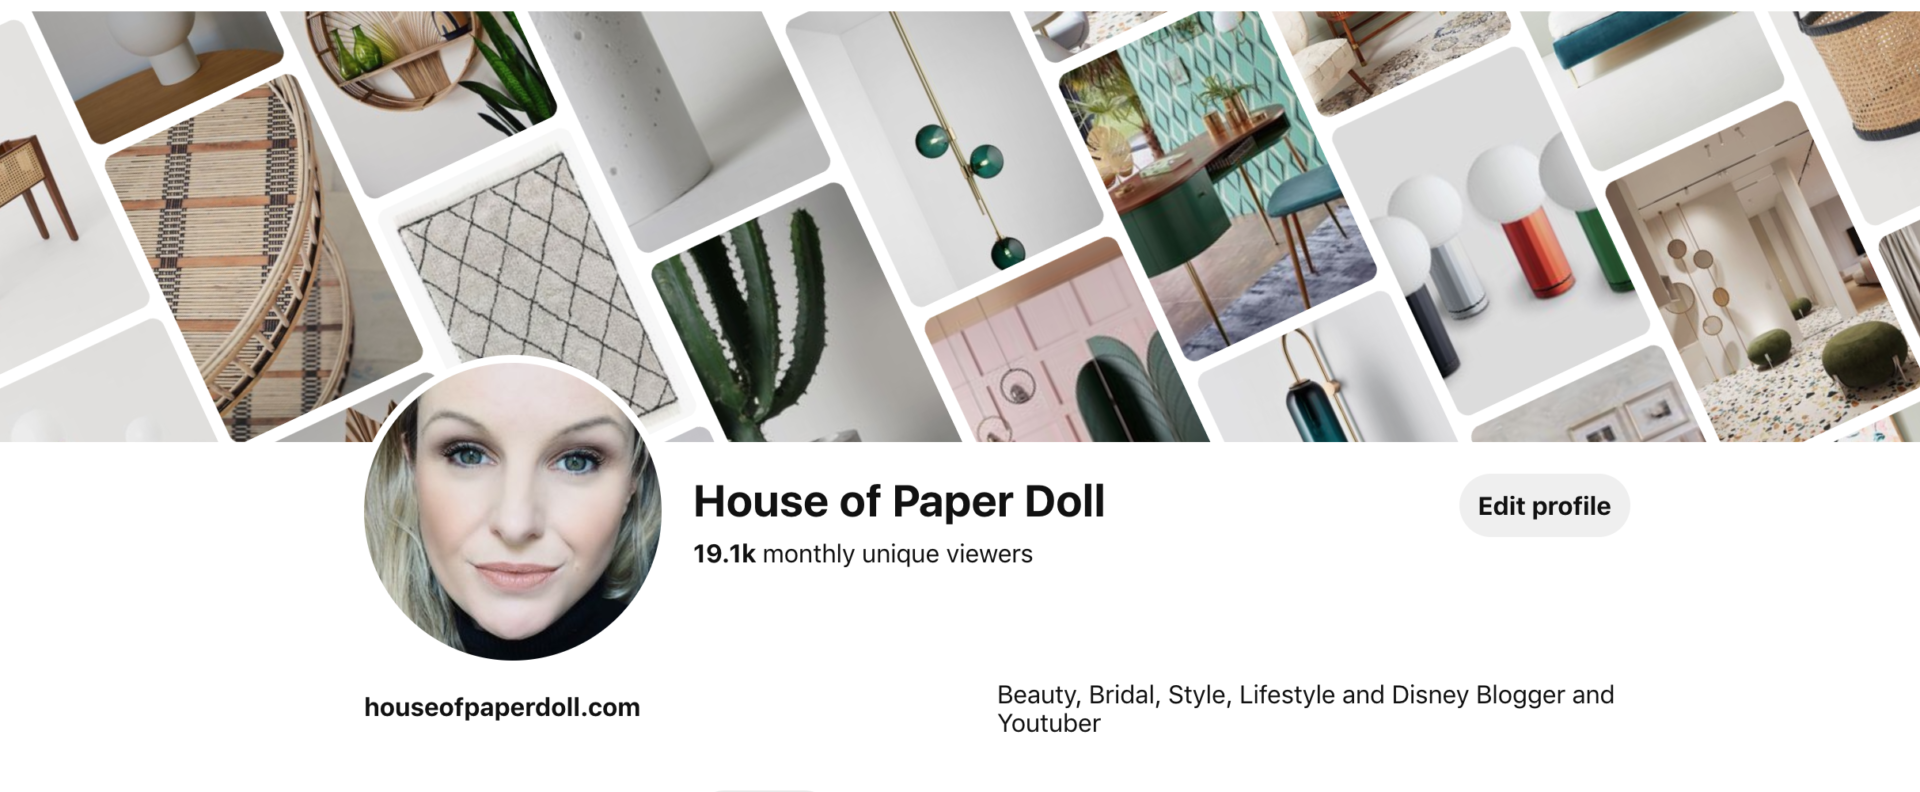 House of Paper Doll Pinterest